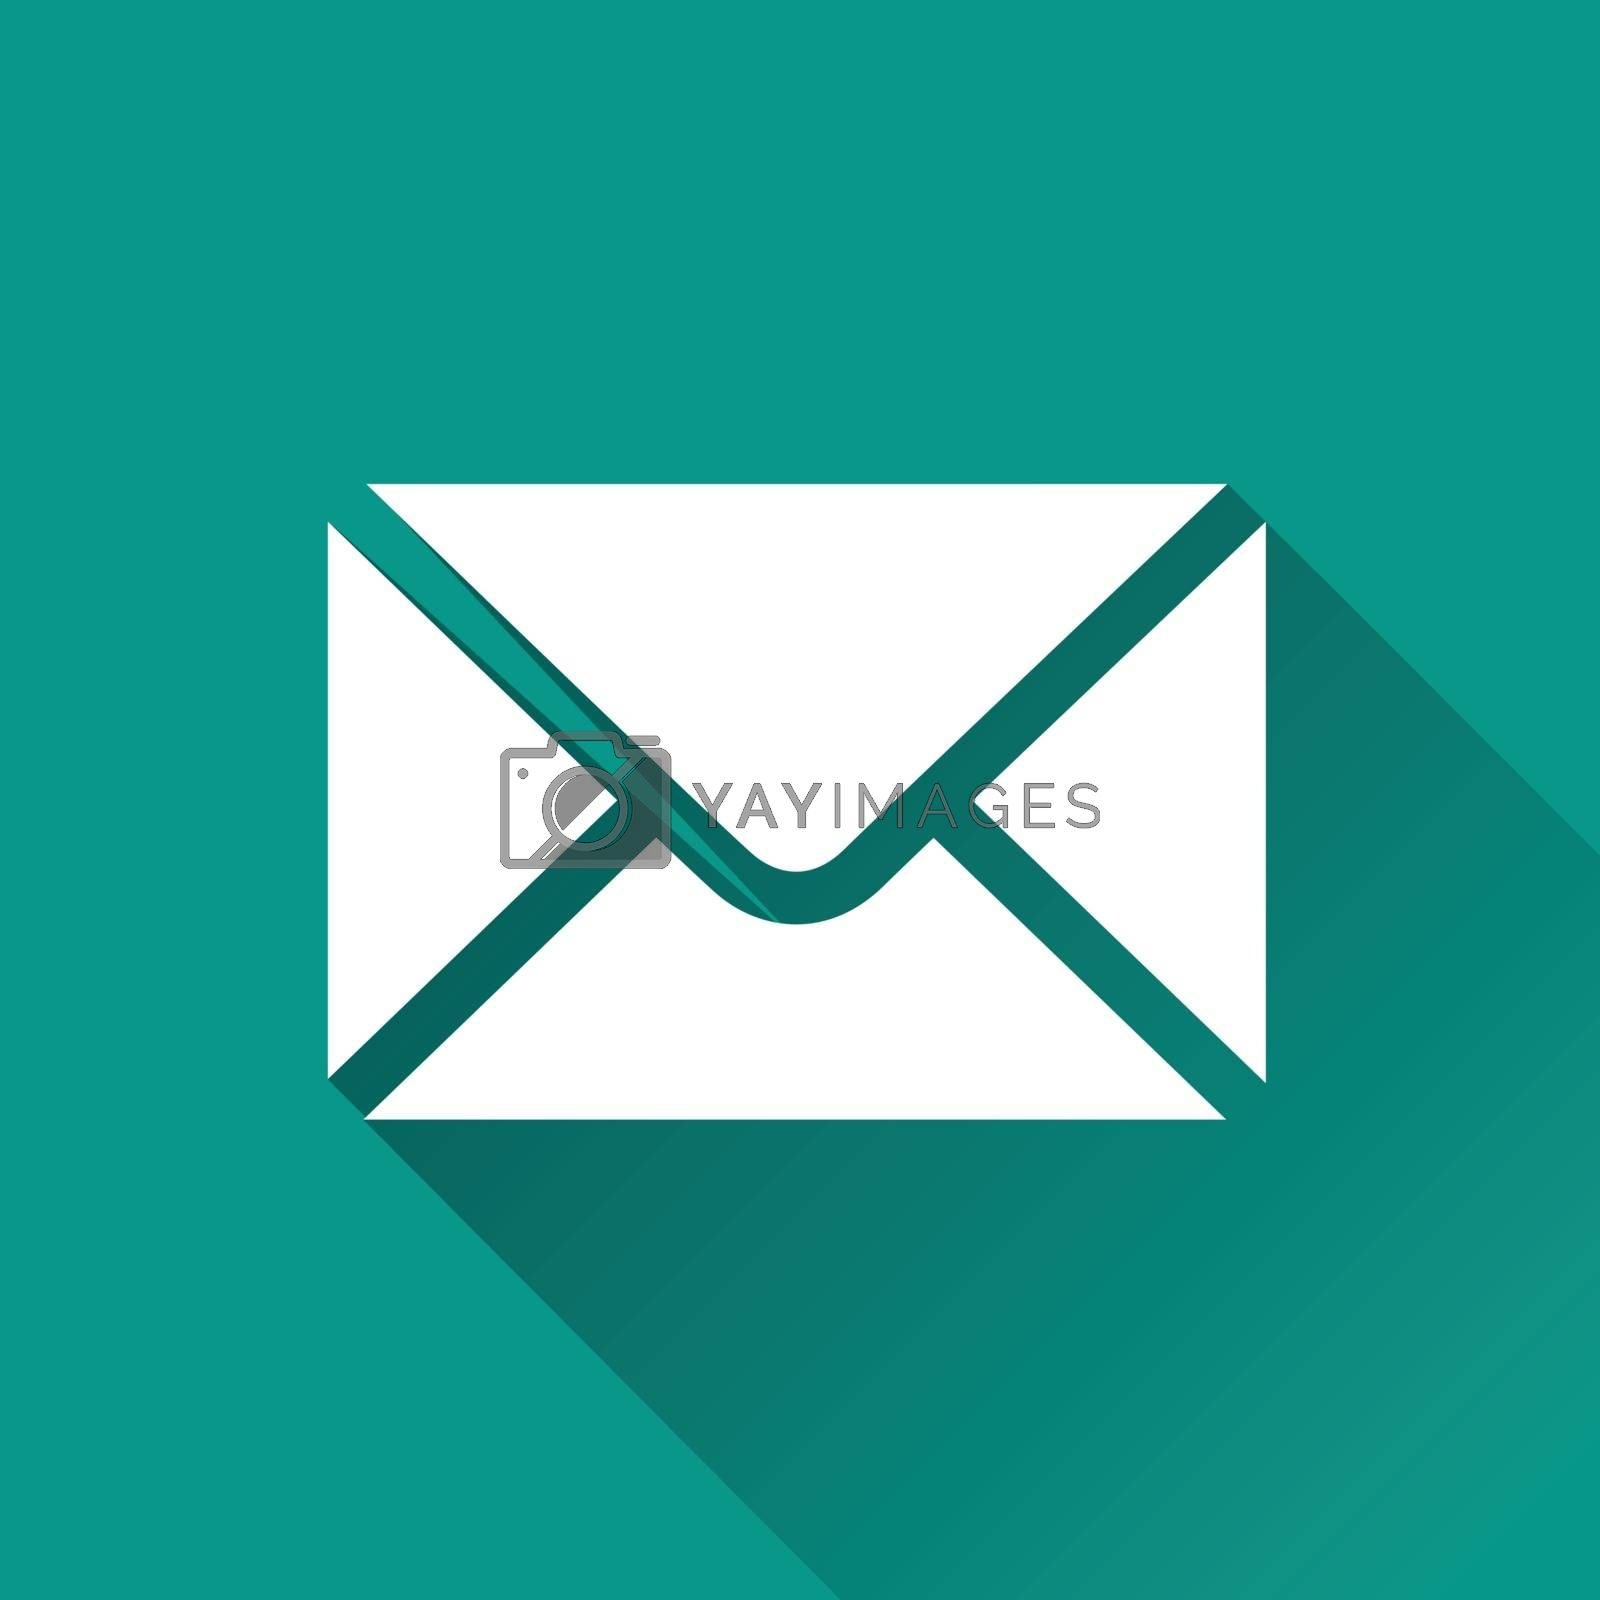 Royalty free image of envelope flat design icon by nickylarson974